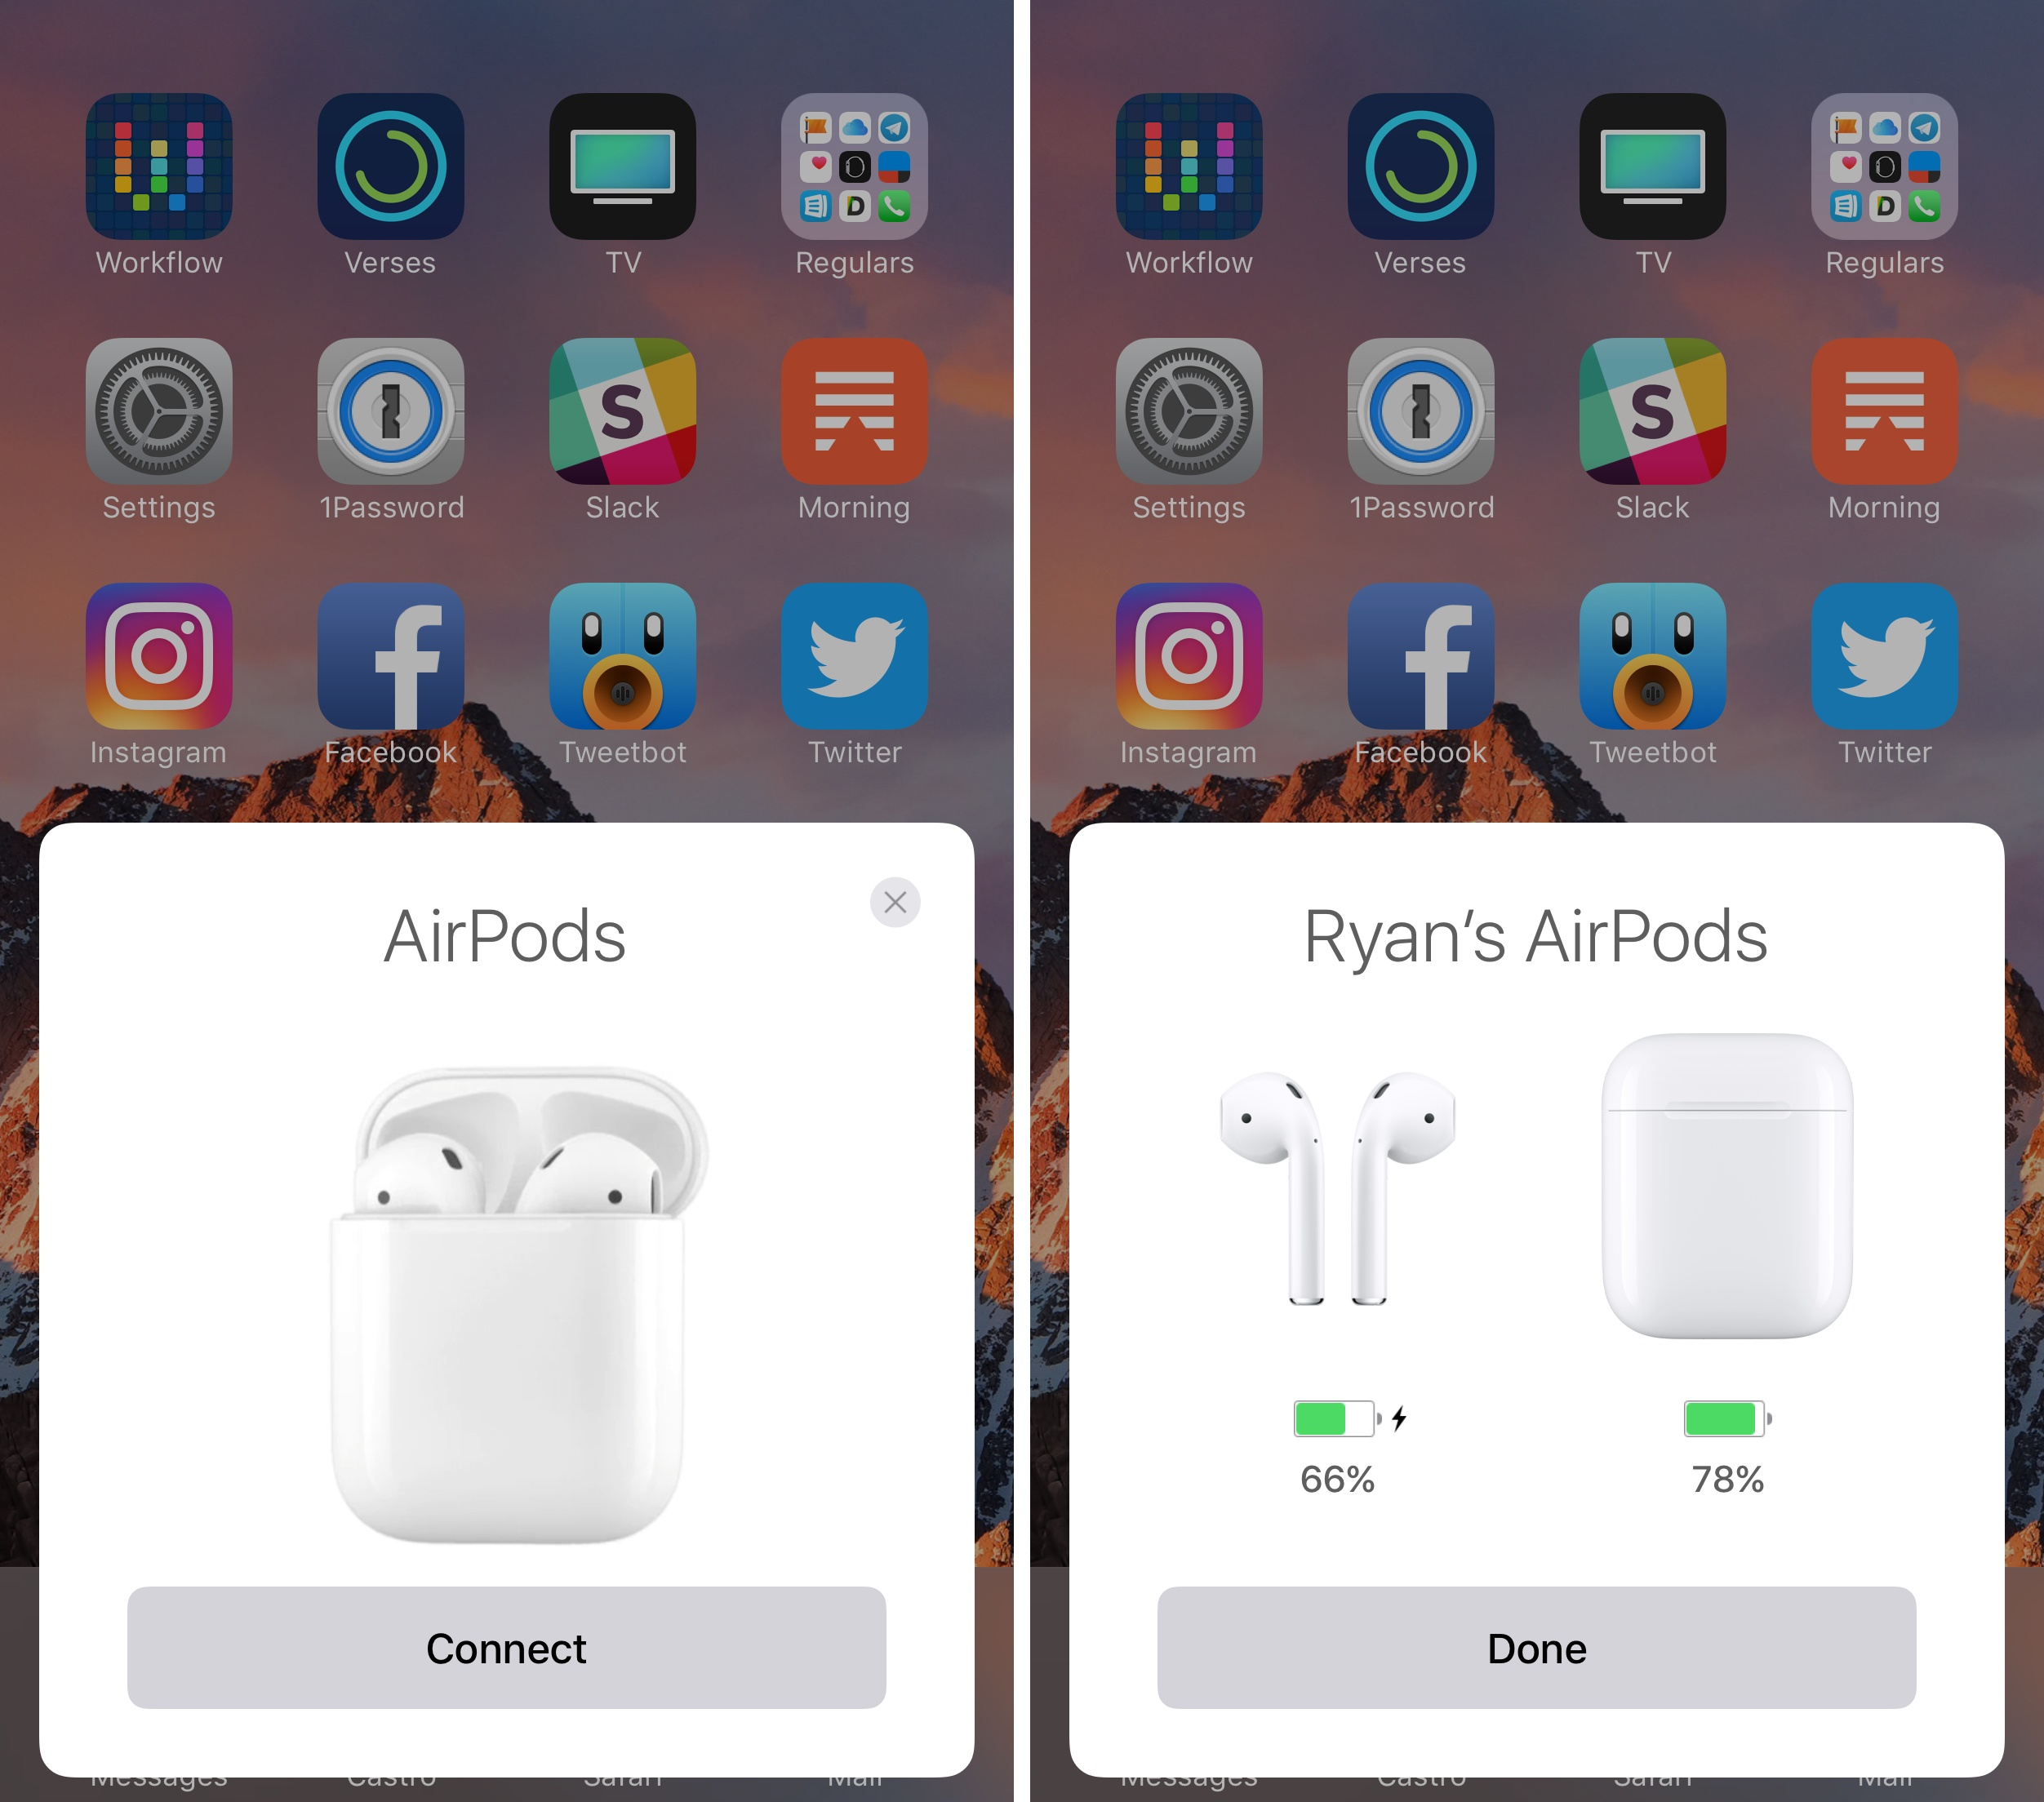 Pairing AirPods is dead simple.